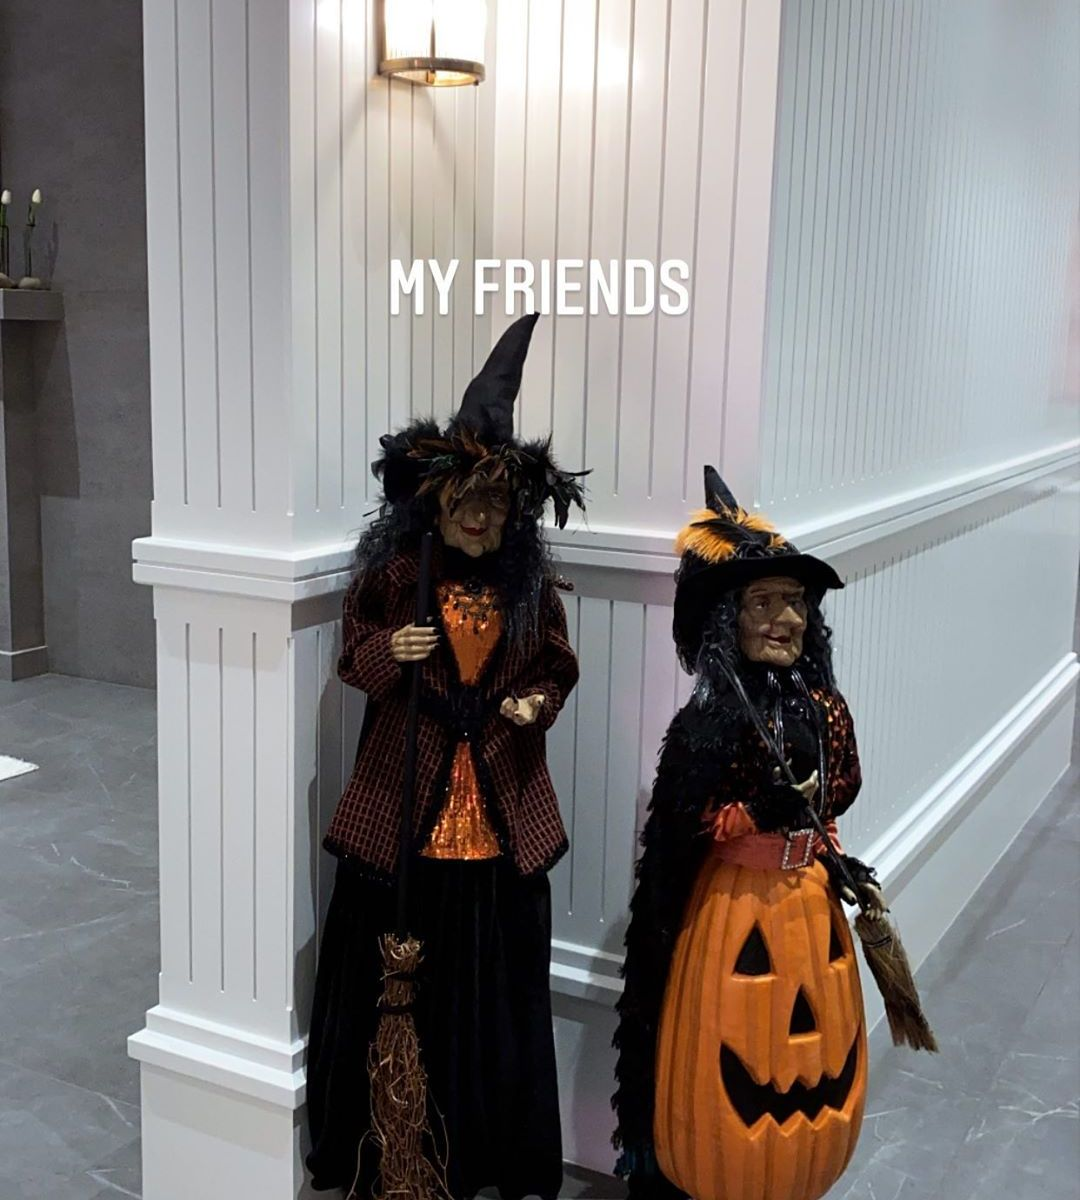 Decoration Halloween Tati.Kylie Jenner S Halloween Decorations See Her Festive Home